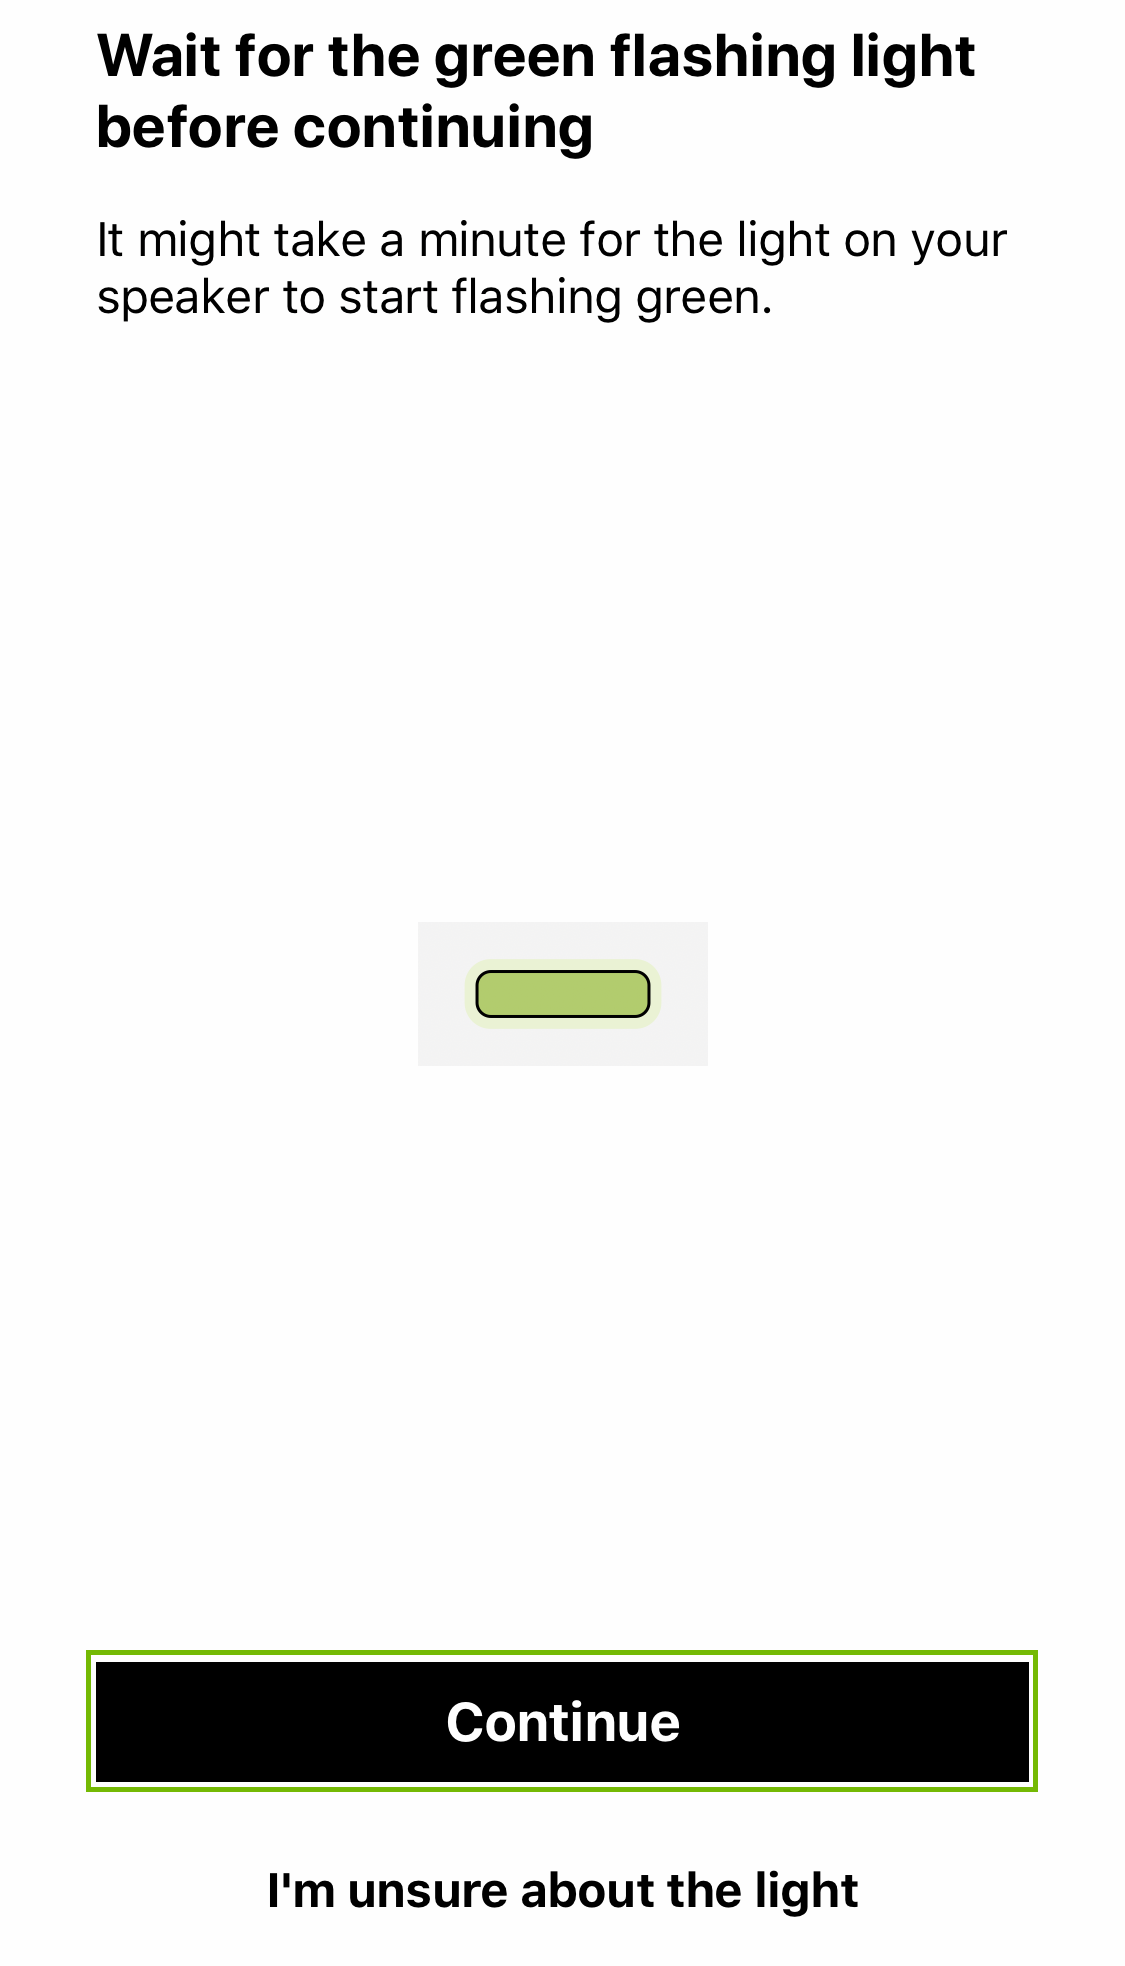 Green flashing light check with continue highlighted